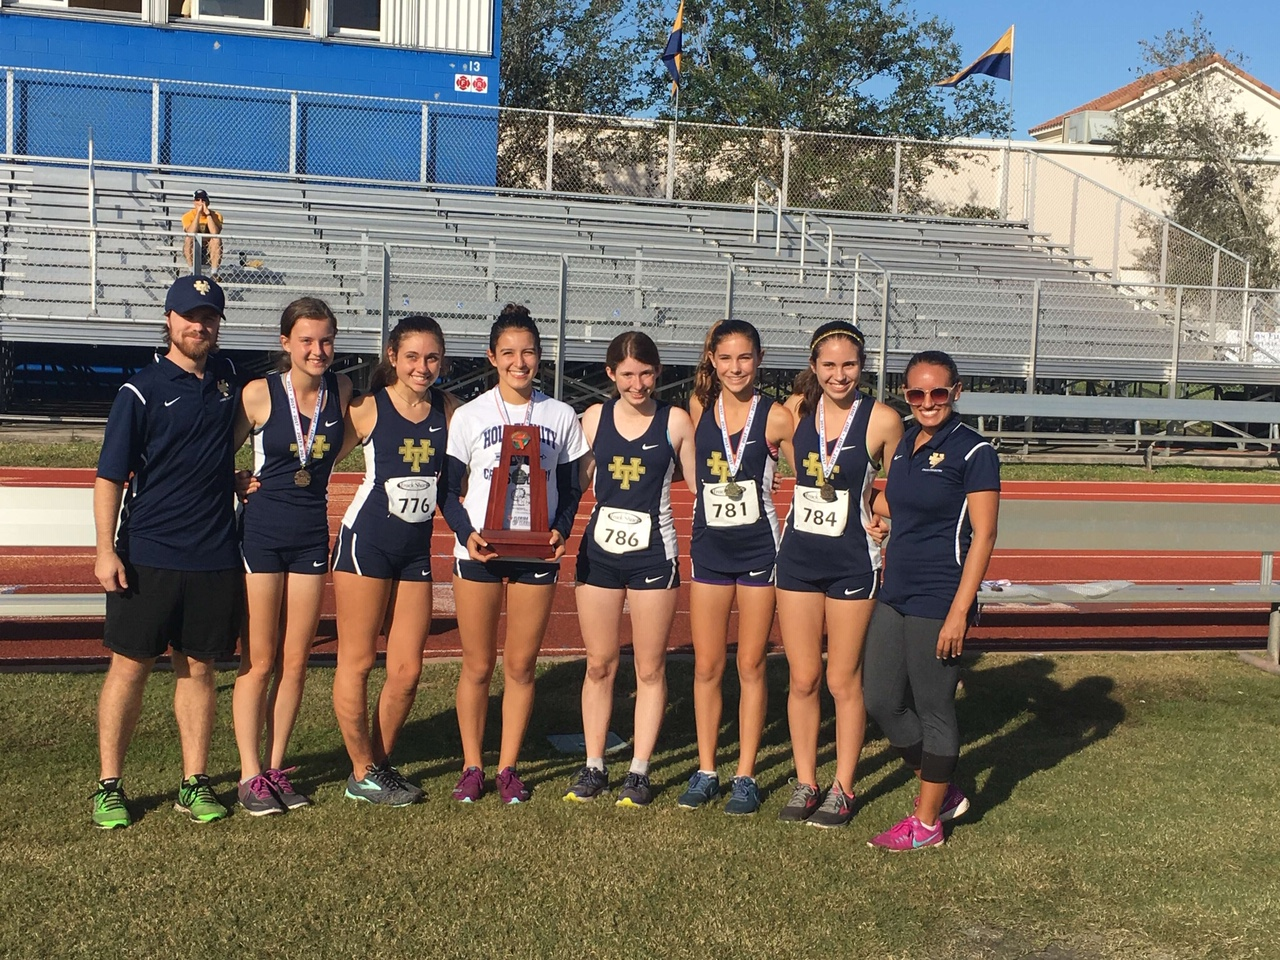 The Holy Trinity girls' cross country team won the District title in 2017. However, the team will face stiffer competition this year due to being relocated to 1A-D4 with many of 1A's top teams due to FHSAA's new guidelines.